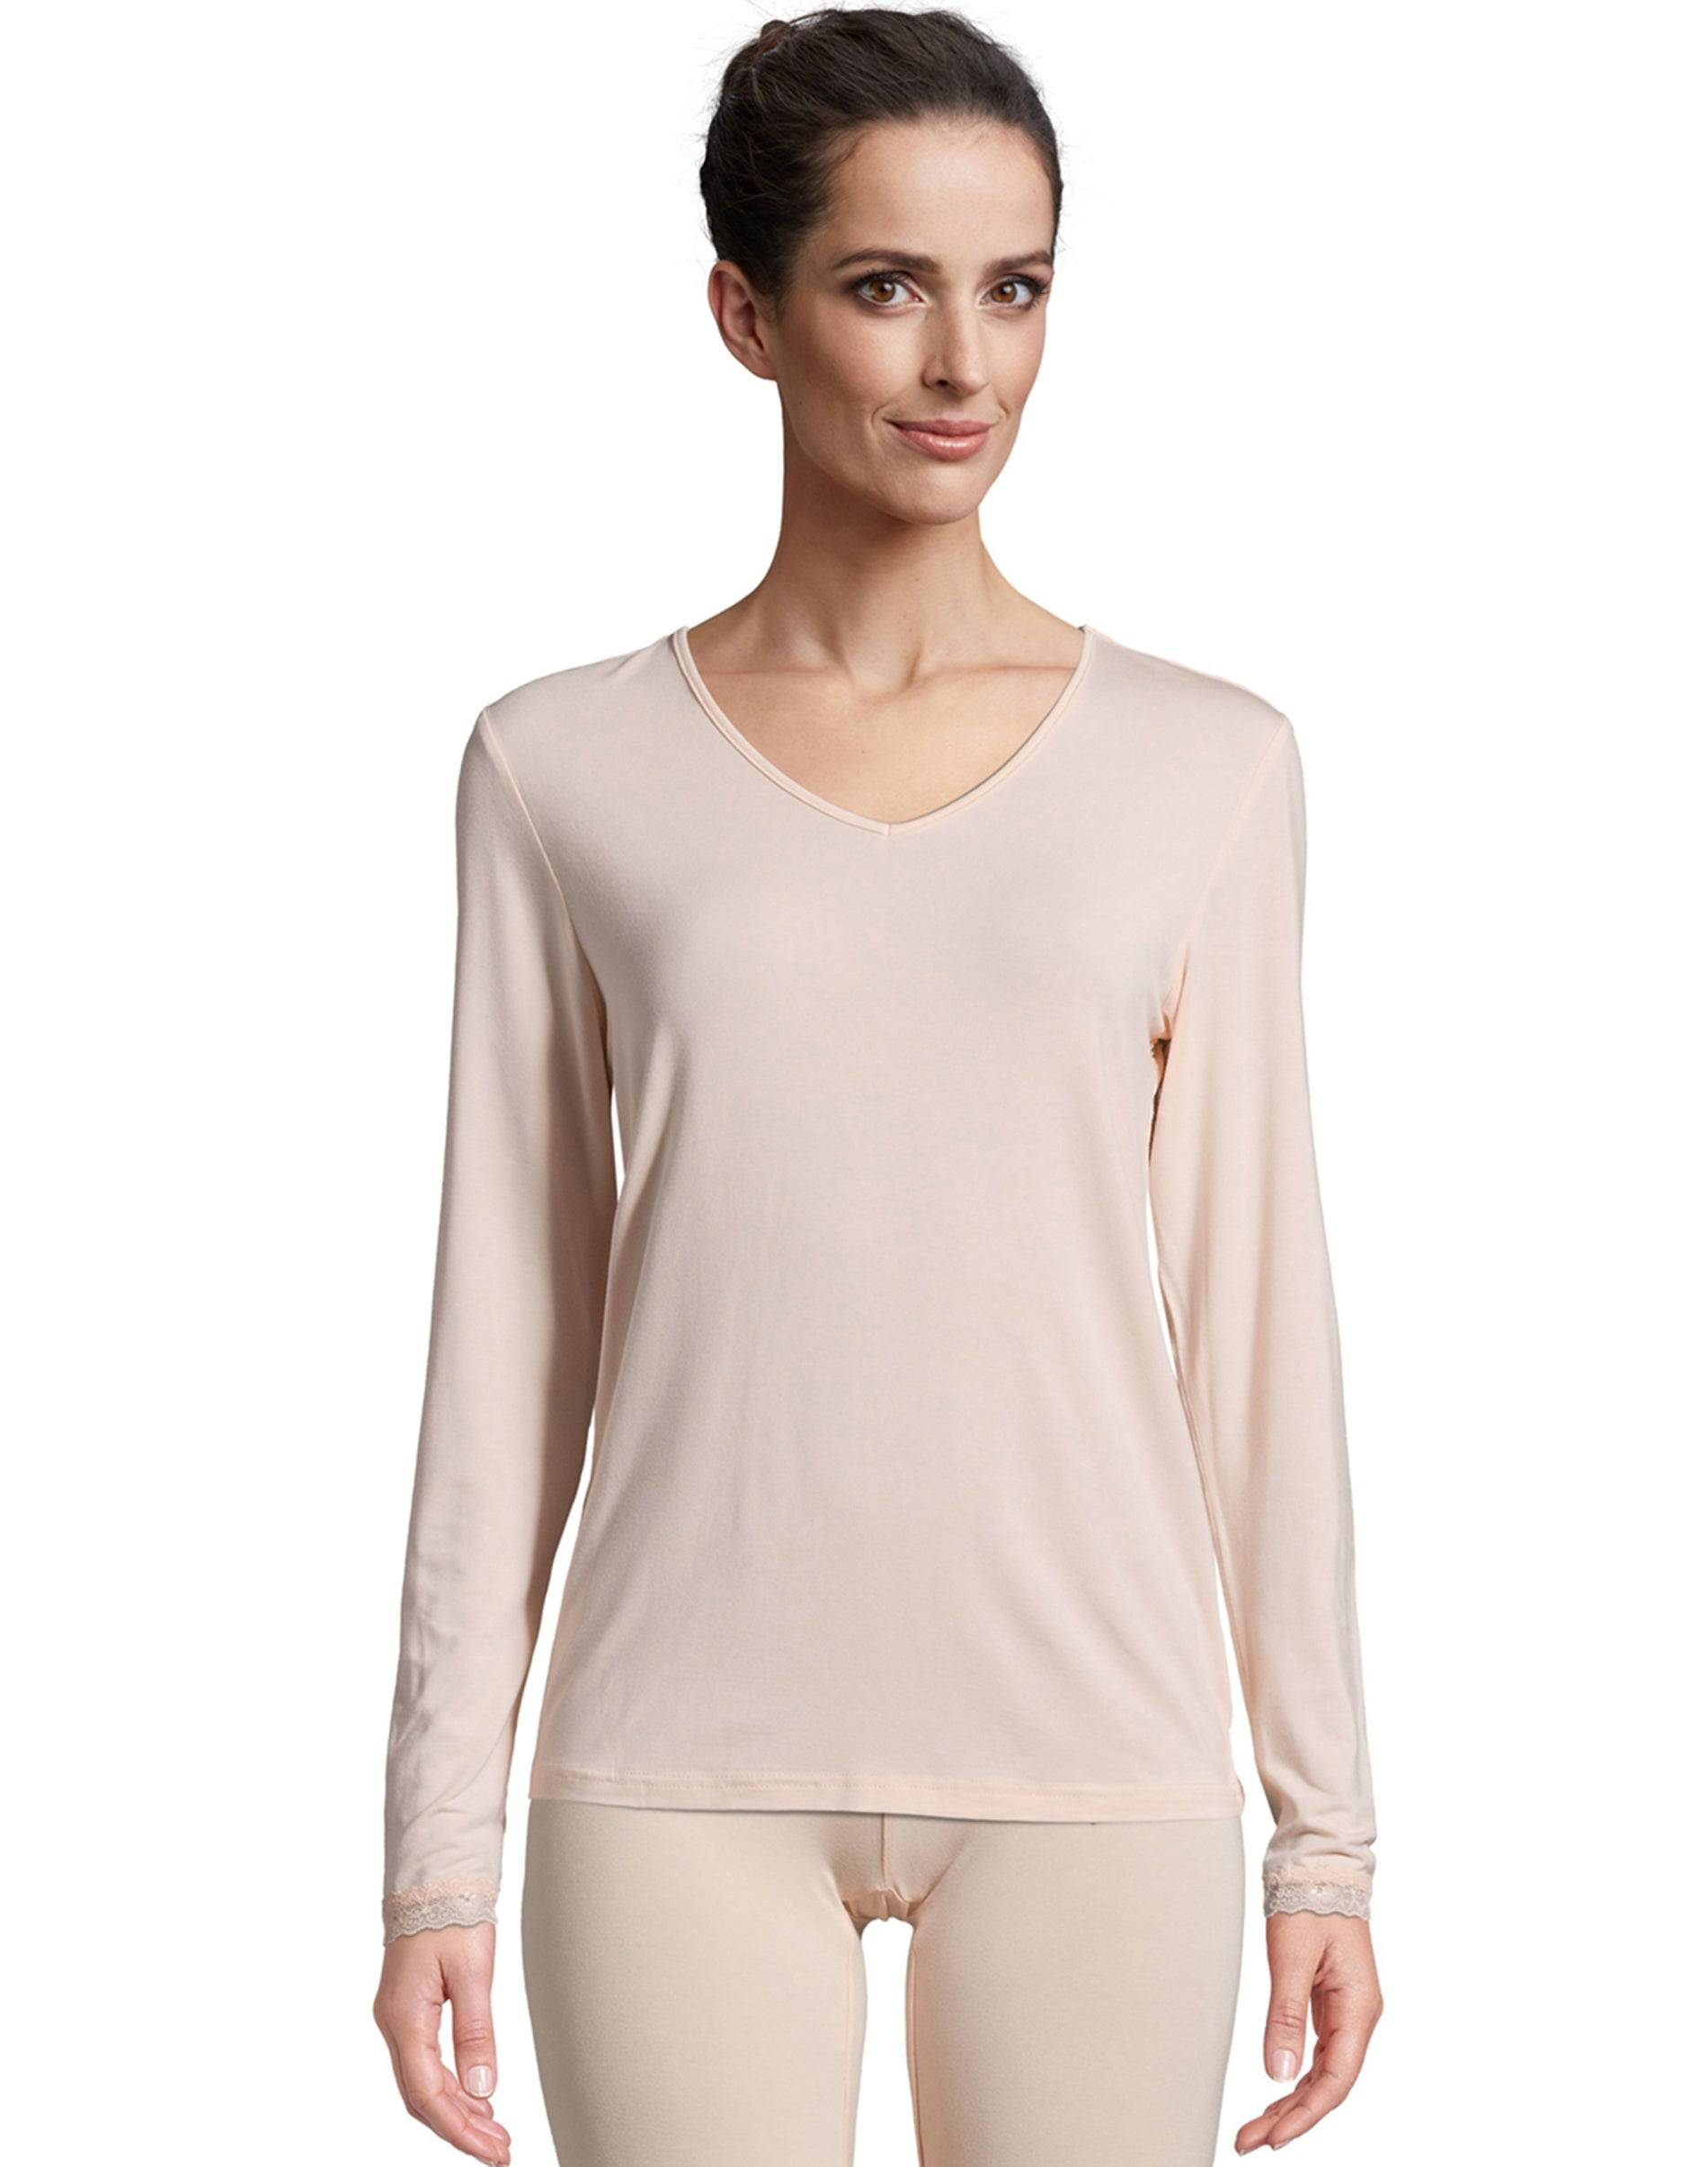 Hanes Women's Comfort Collection Thermal Top Pink L